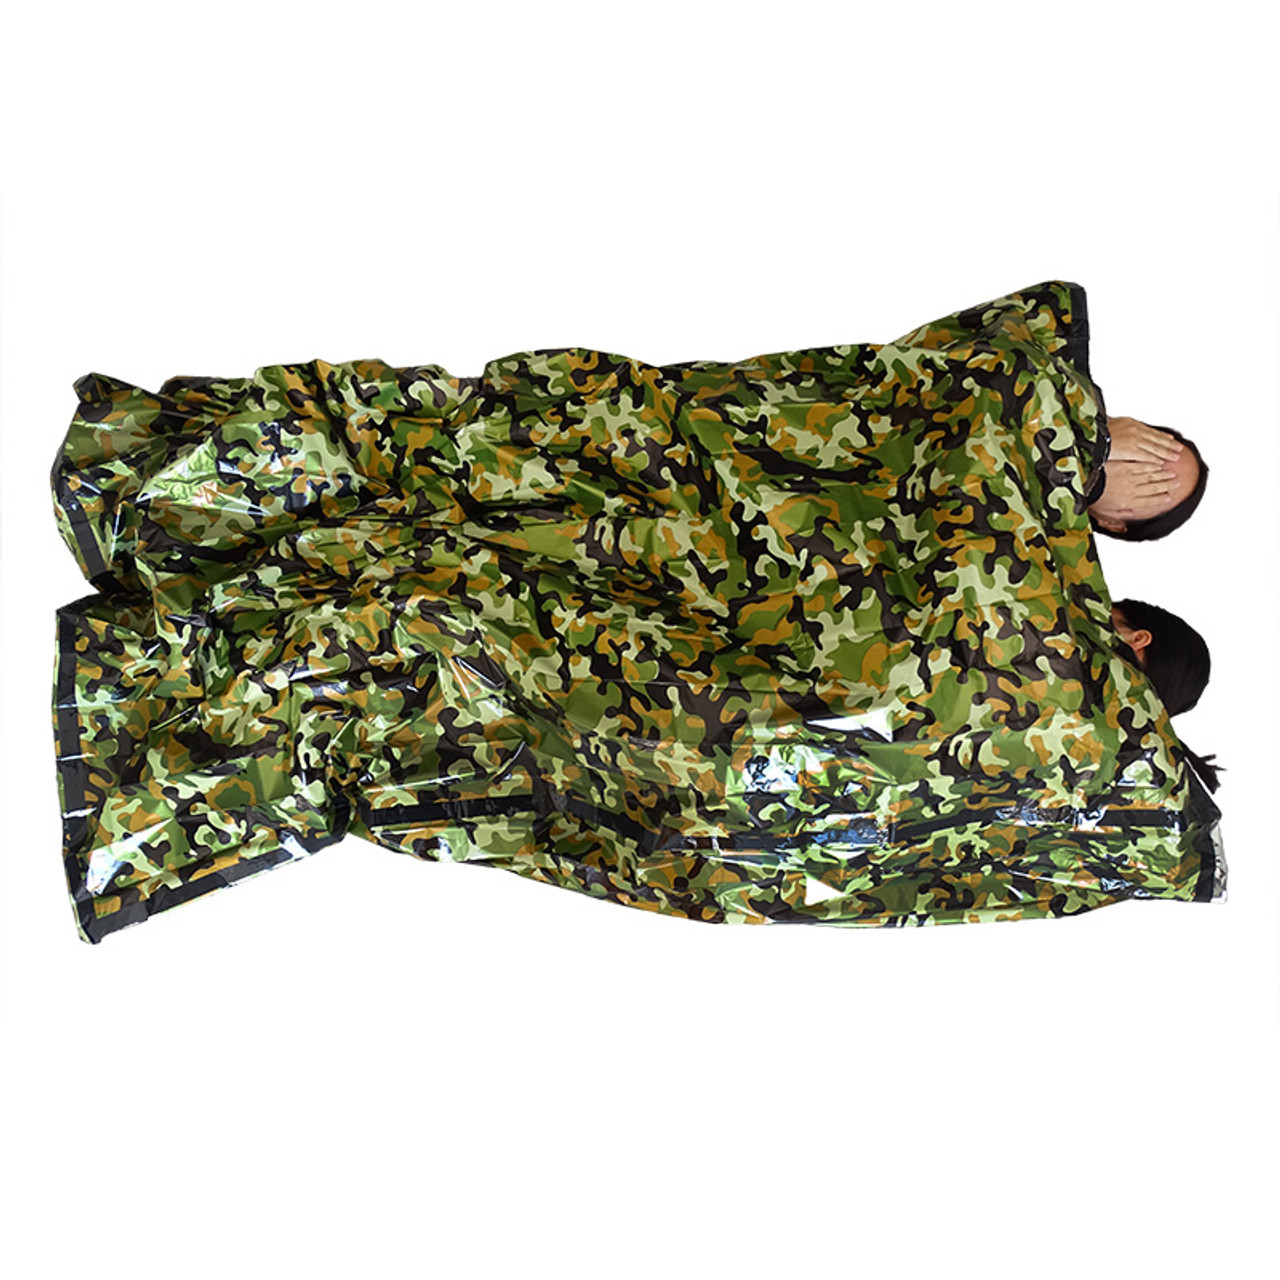 lowest price d3784 d804e Camouflage Survival Emergency Sleeping Bag Thermal Keep Warm Waterproof  Mylar Double First Aid Emergency Blanket Outdoor Camping